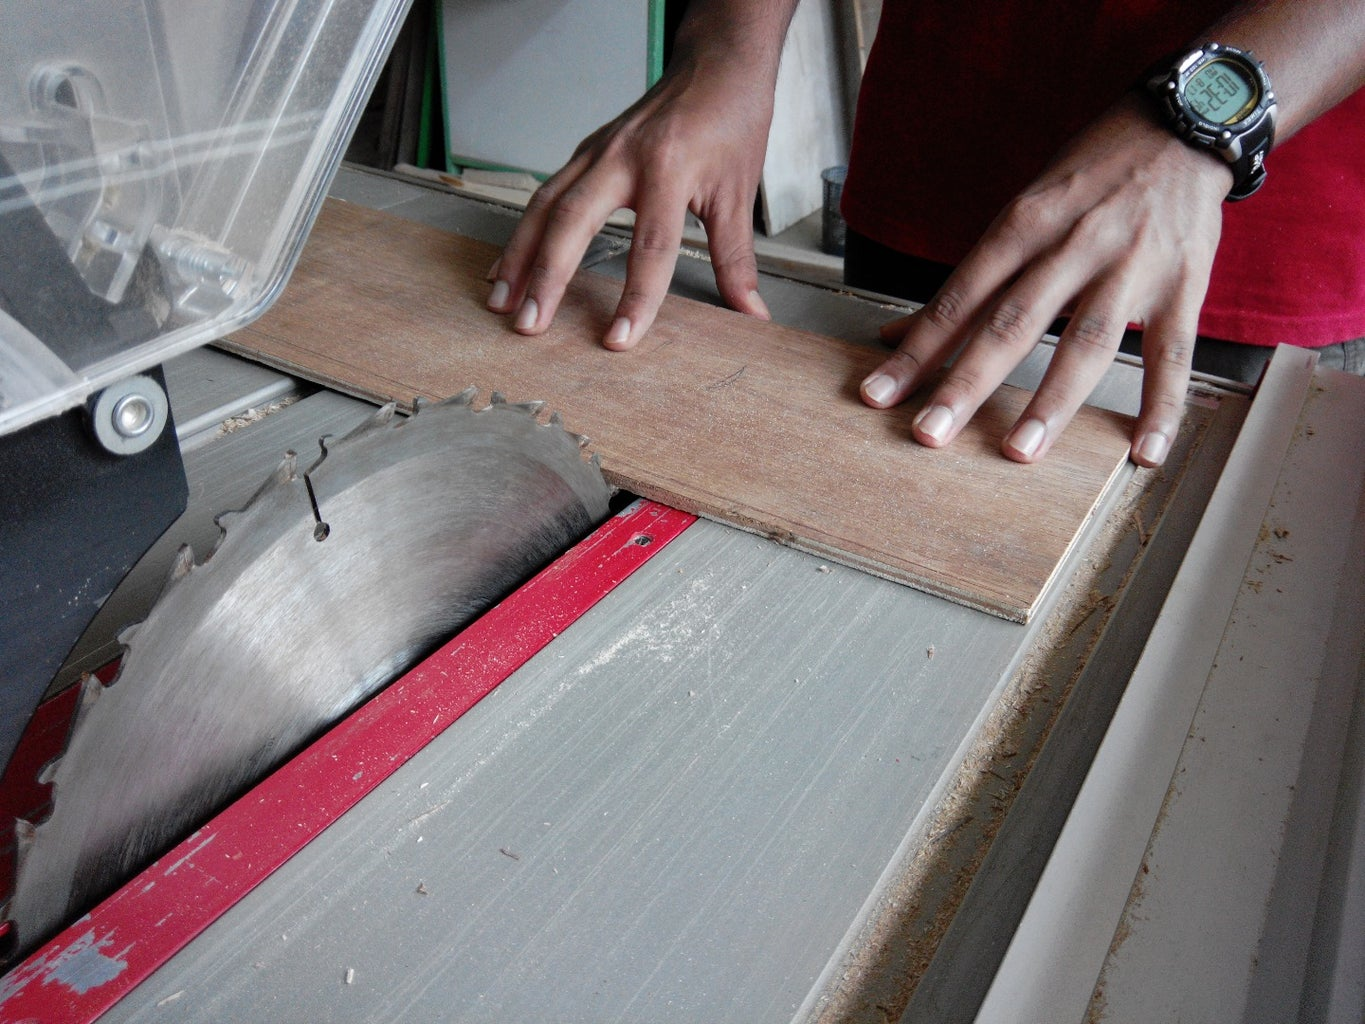 2. Cutting Out Square Plywood Sheets